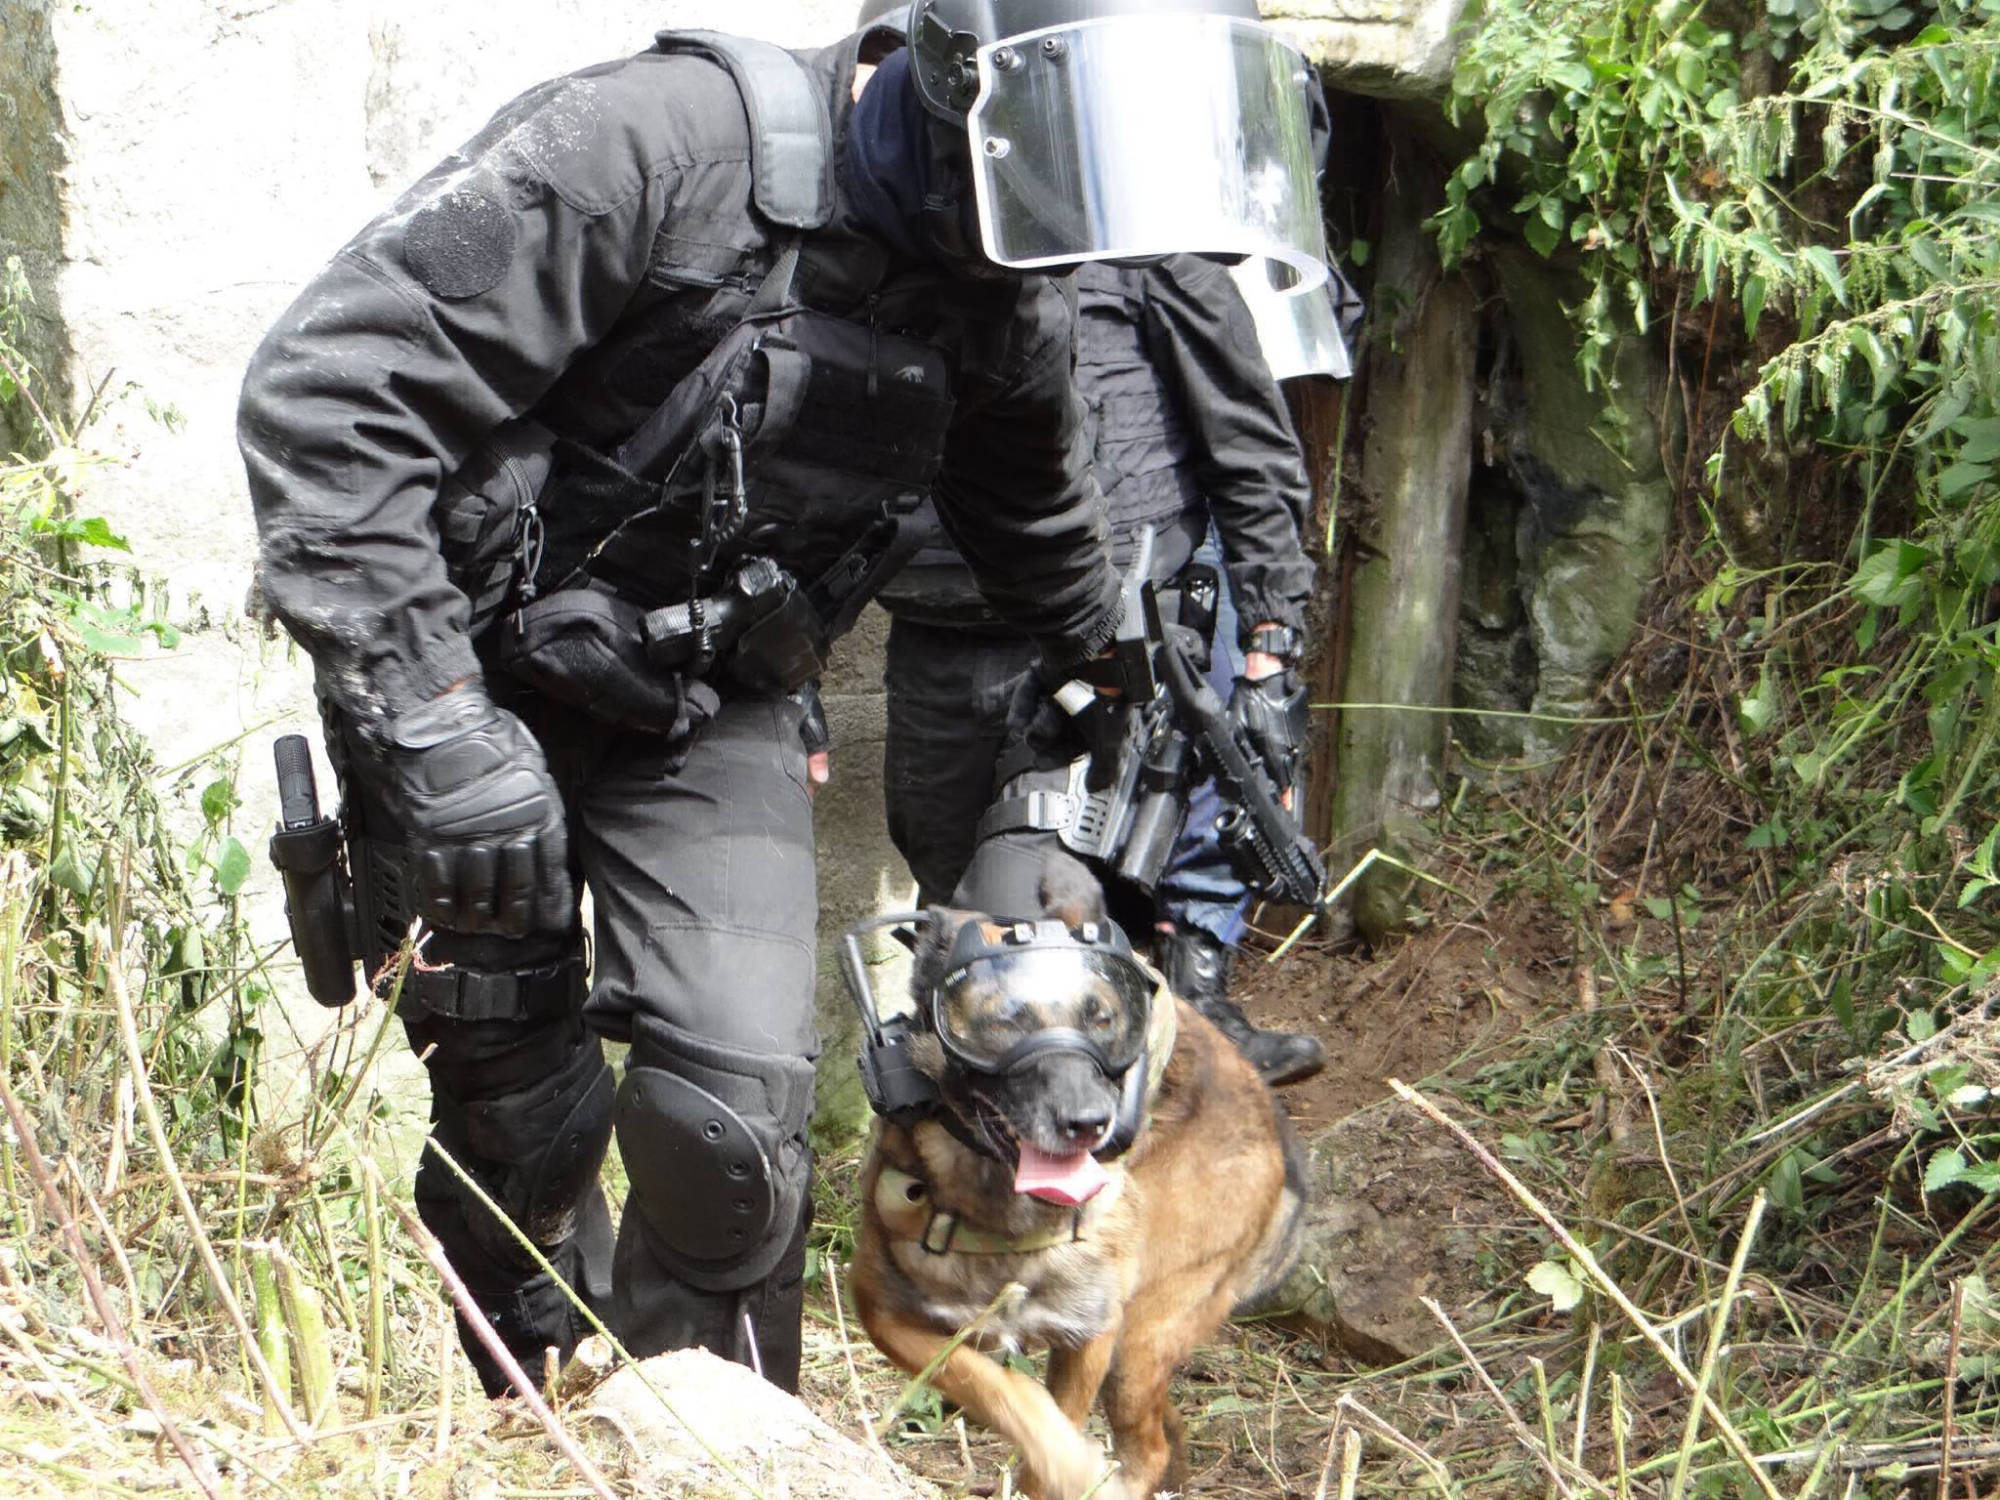 k9 vision system - equipement cyno pour brigade canine